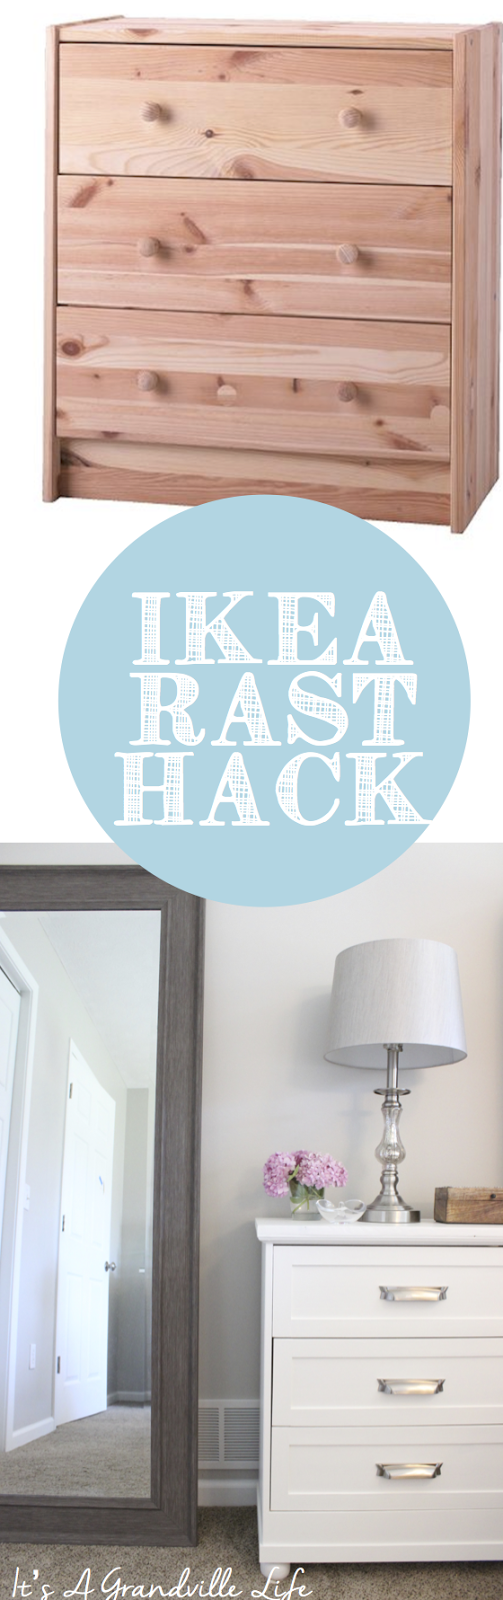 it s a grandville life diy ikea rast hack in case you are unfamiliar with the ikea rast chest it is an unfinished pine chest that well in my opinion looks a little blah as is